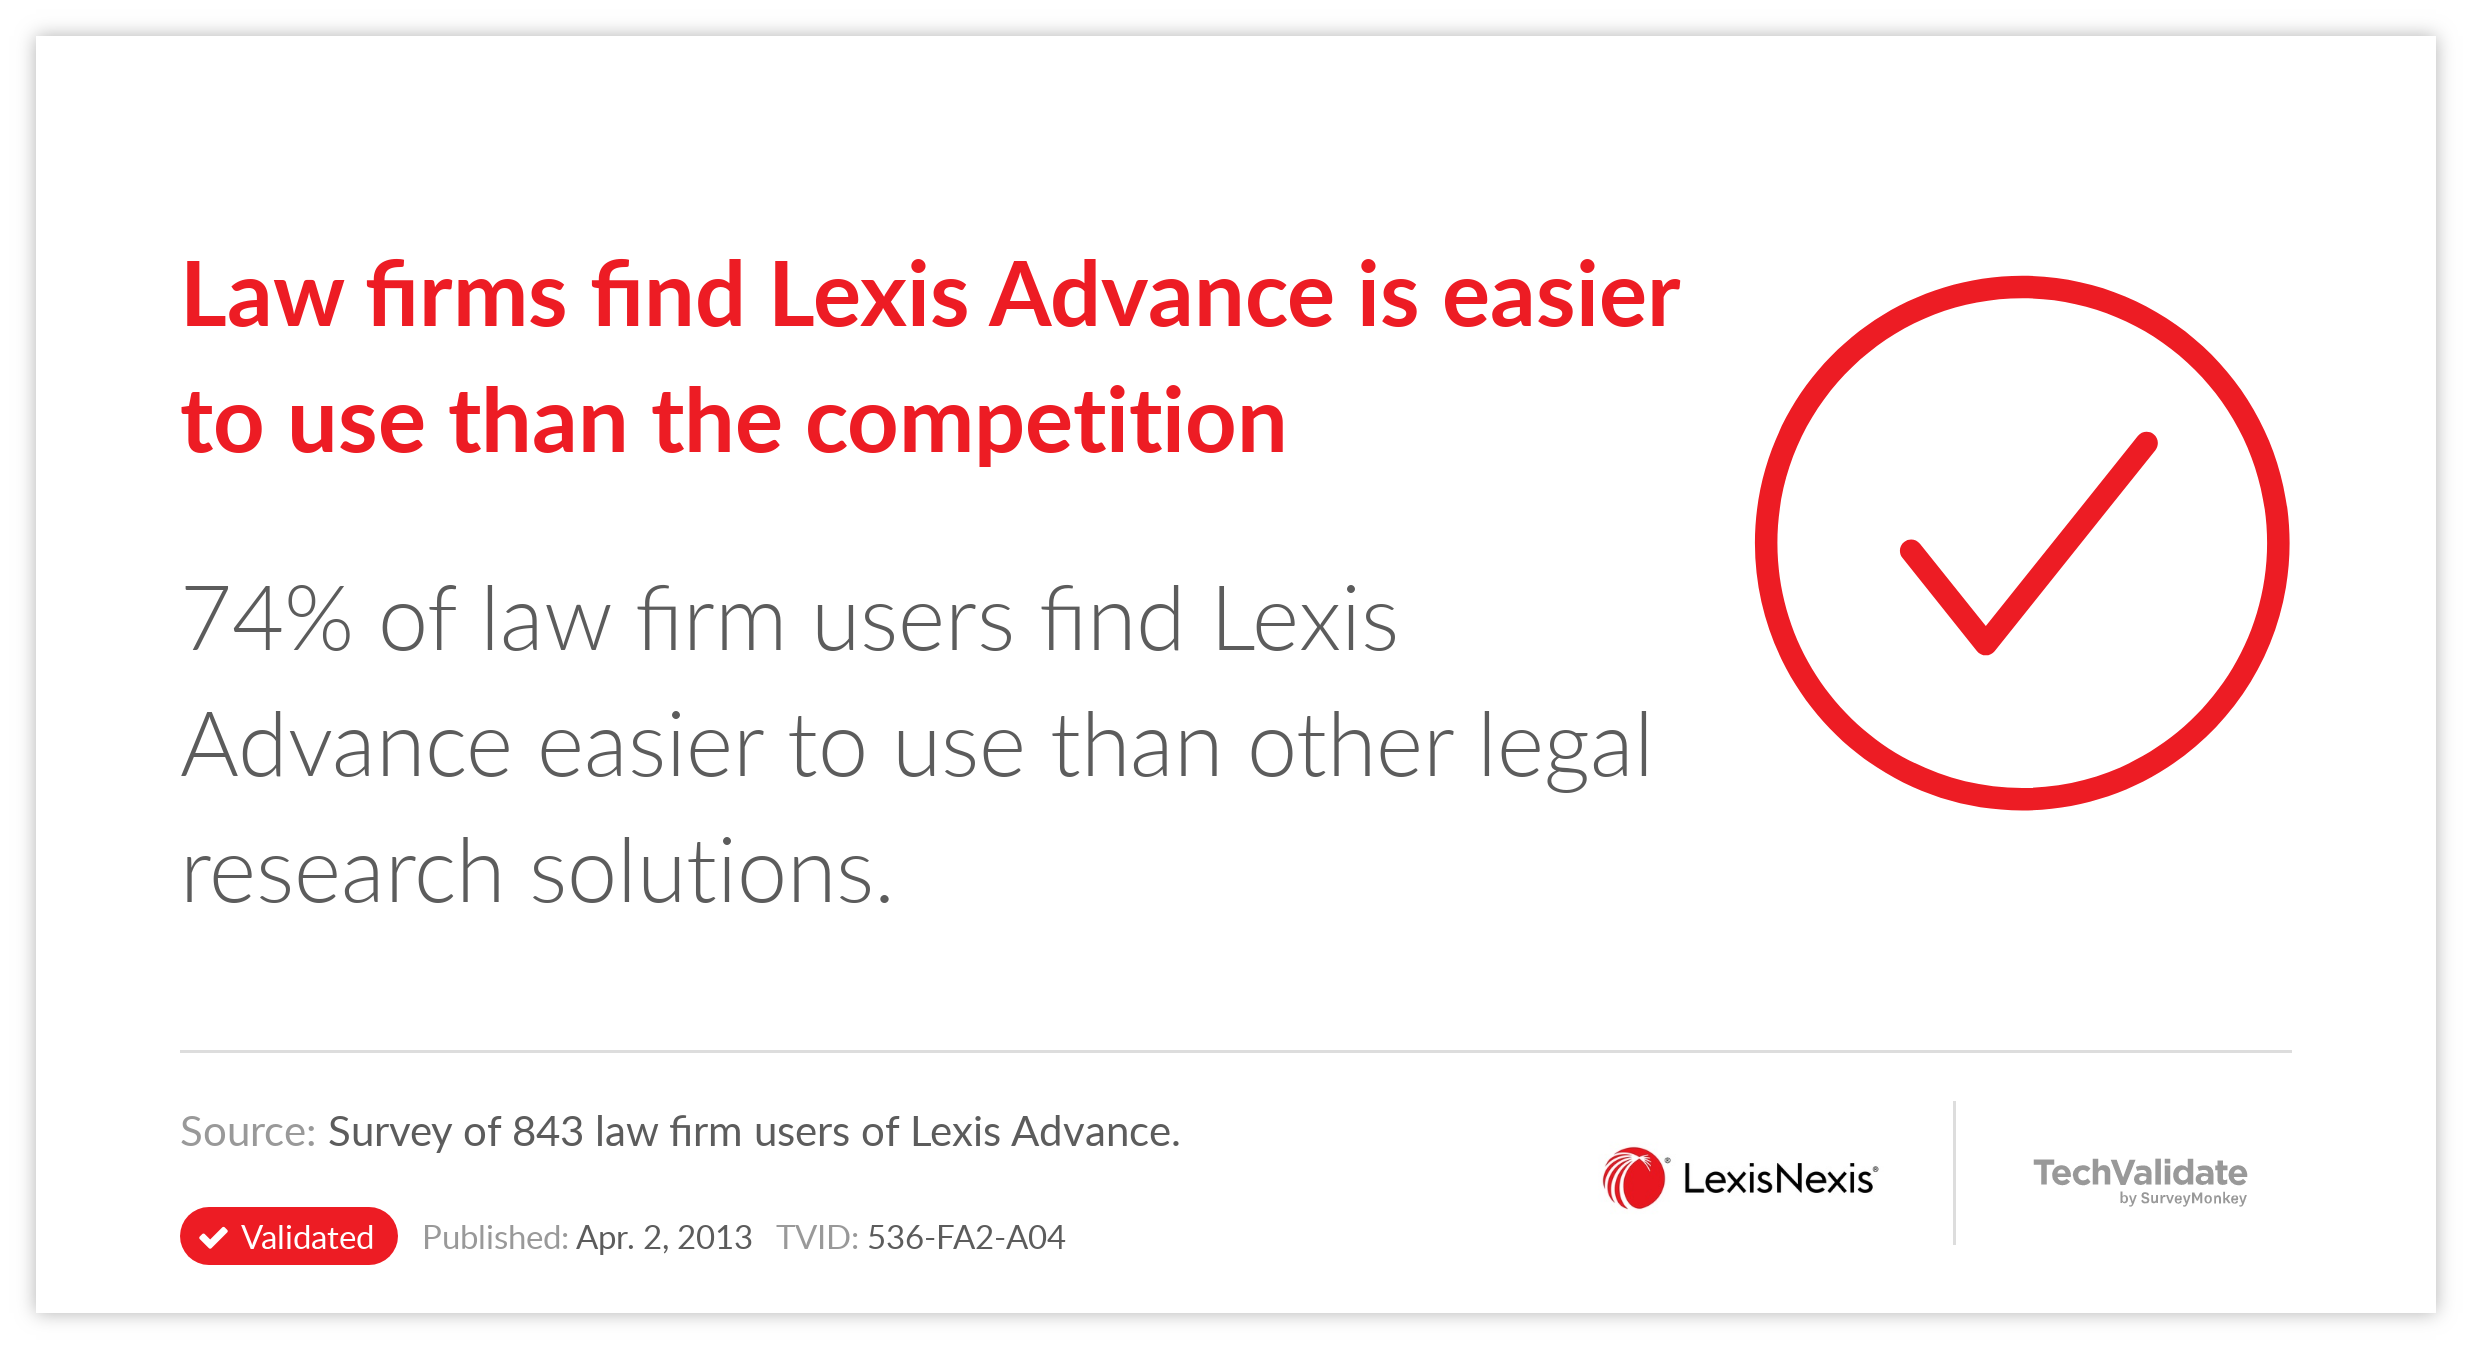 Law firms find Lexis Advance is easier to use than the competition